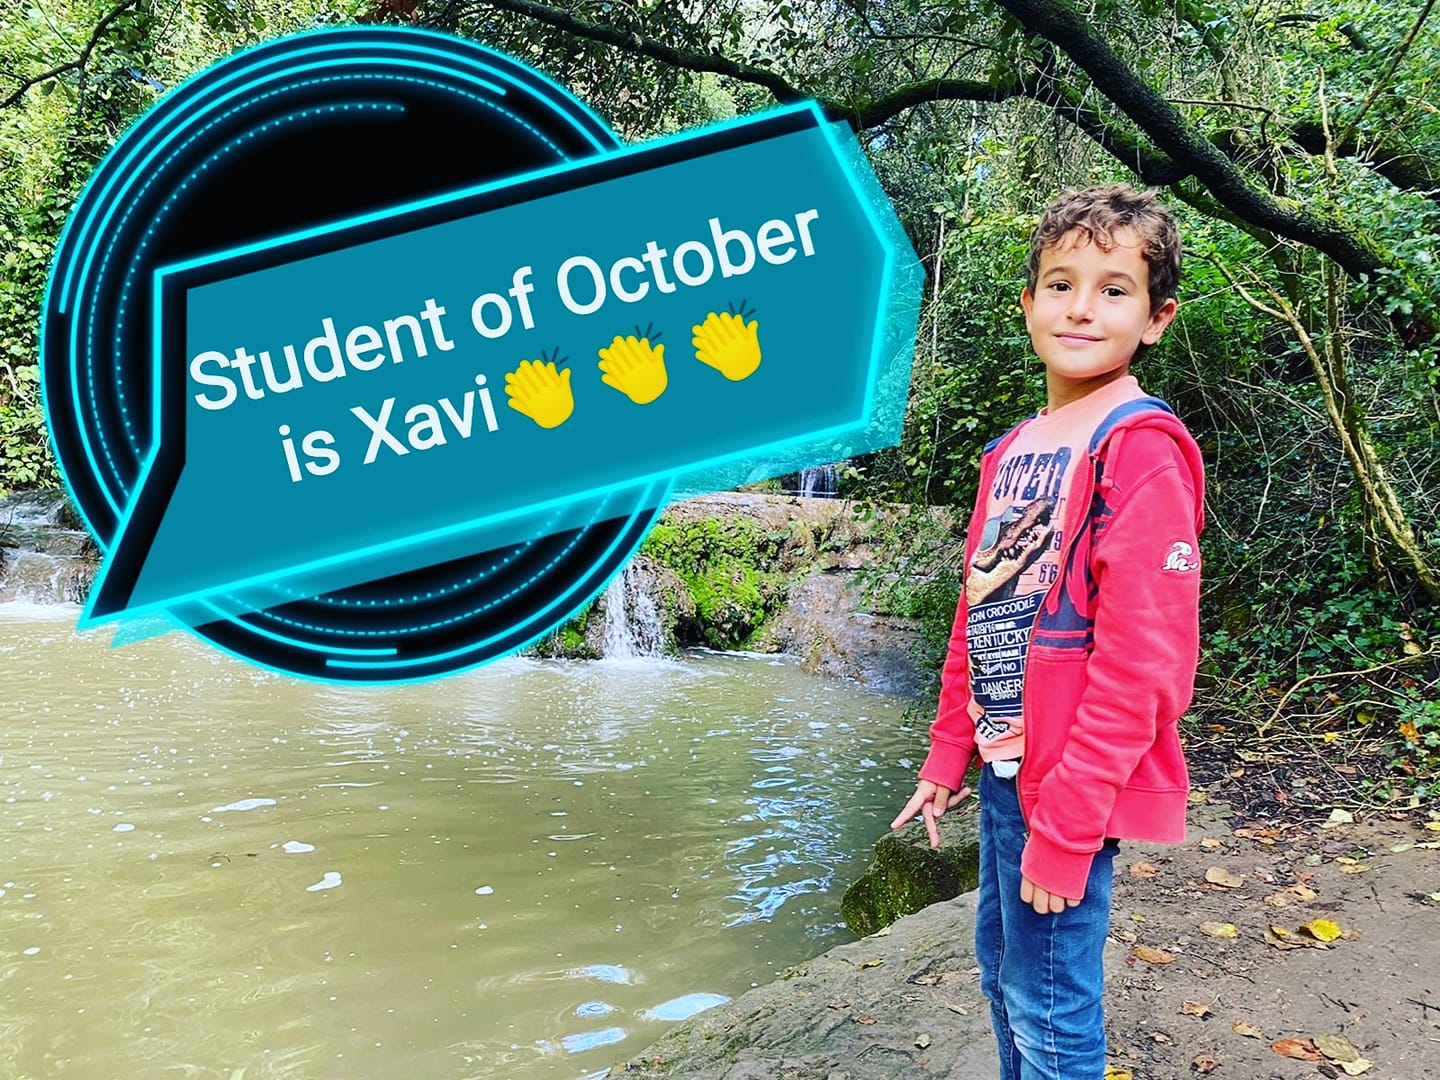 Xavi is our student of October